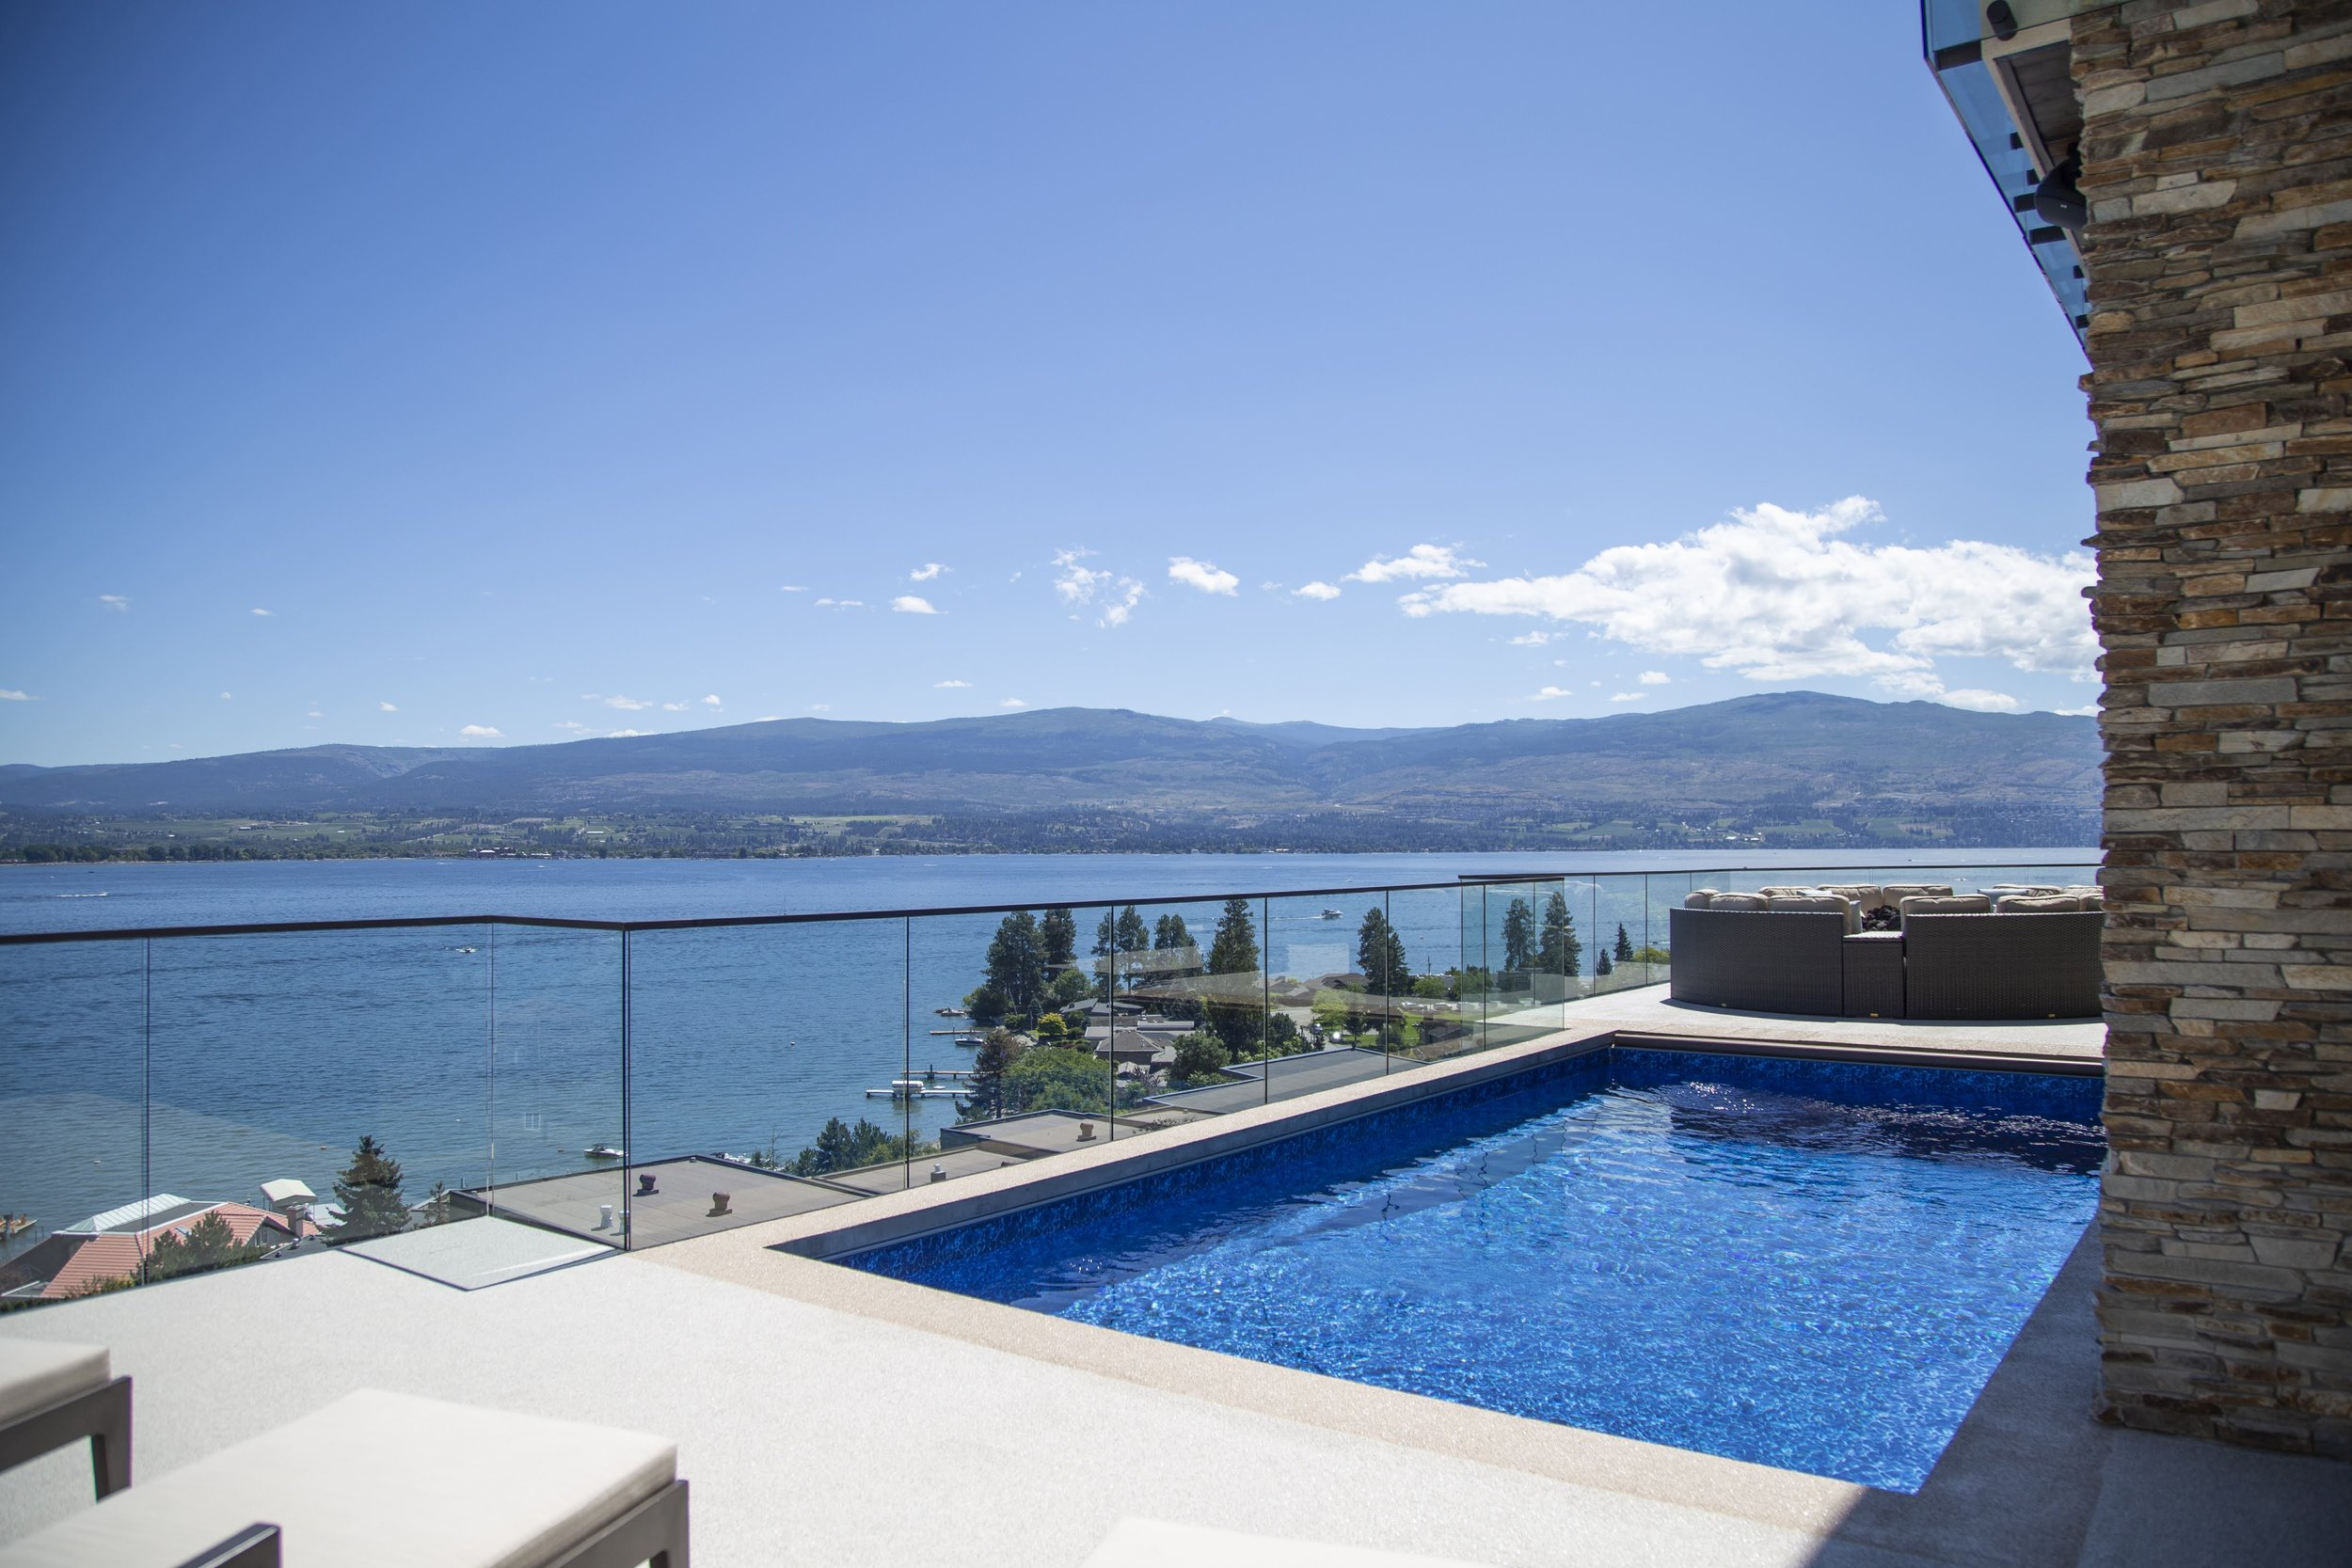 View of the Okanagan Lake from the pool.